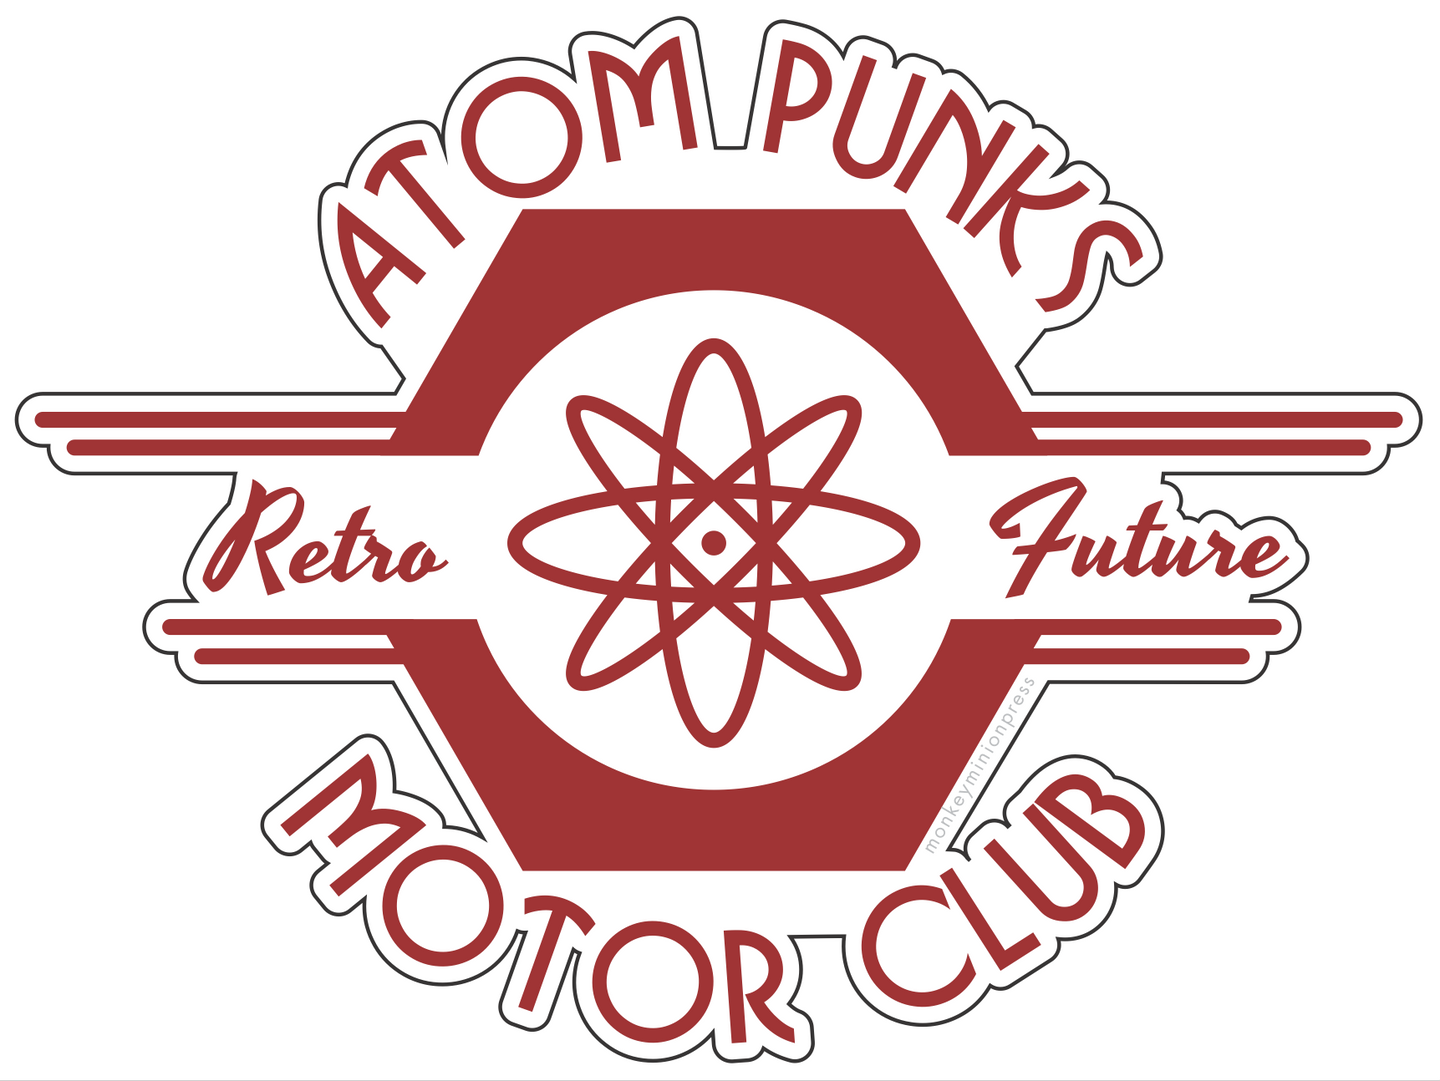 AtomPunks Retro Future Motor Club - Vinyl Sticker